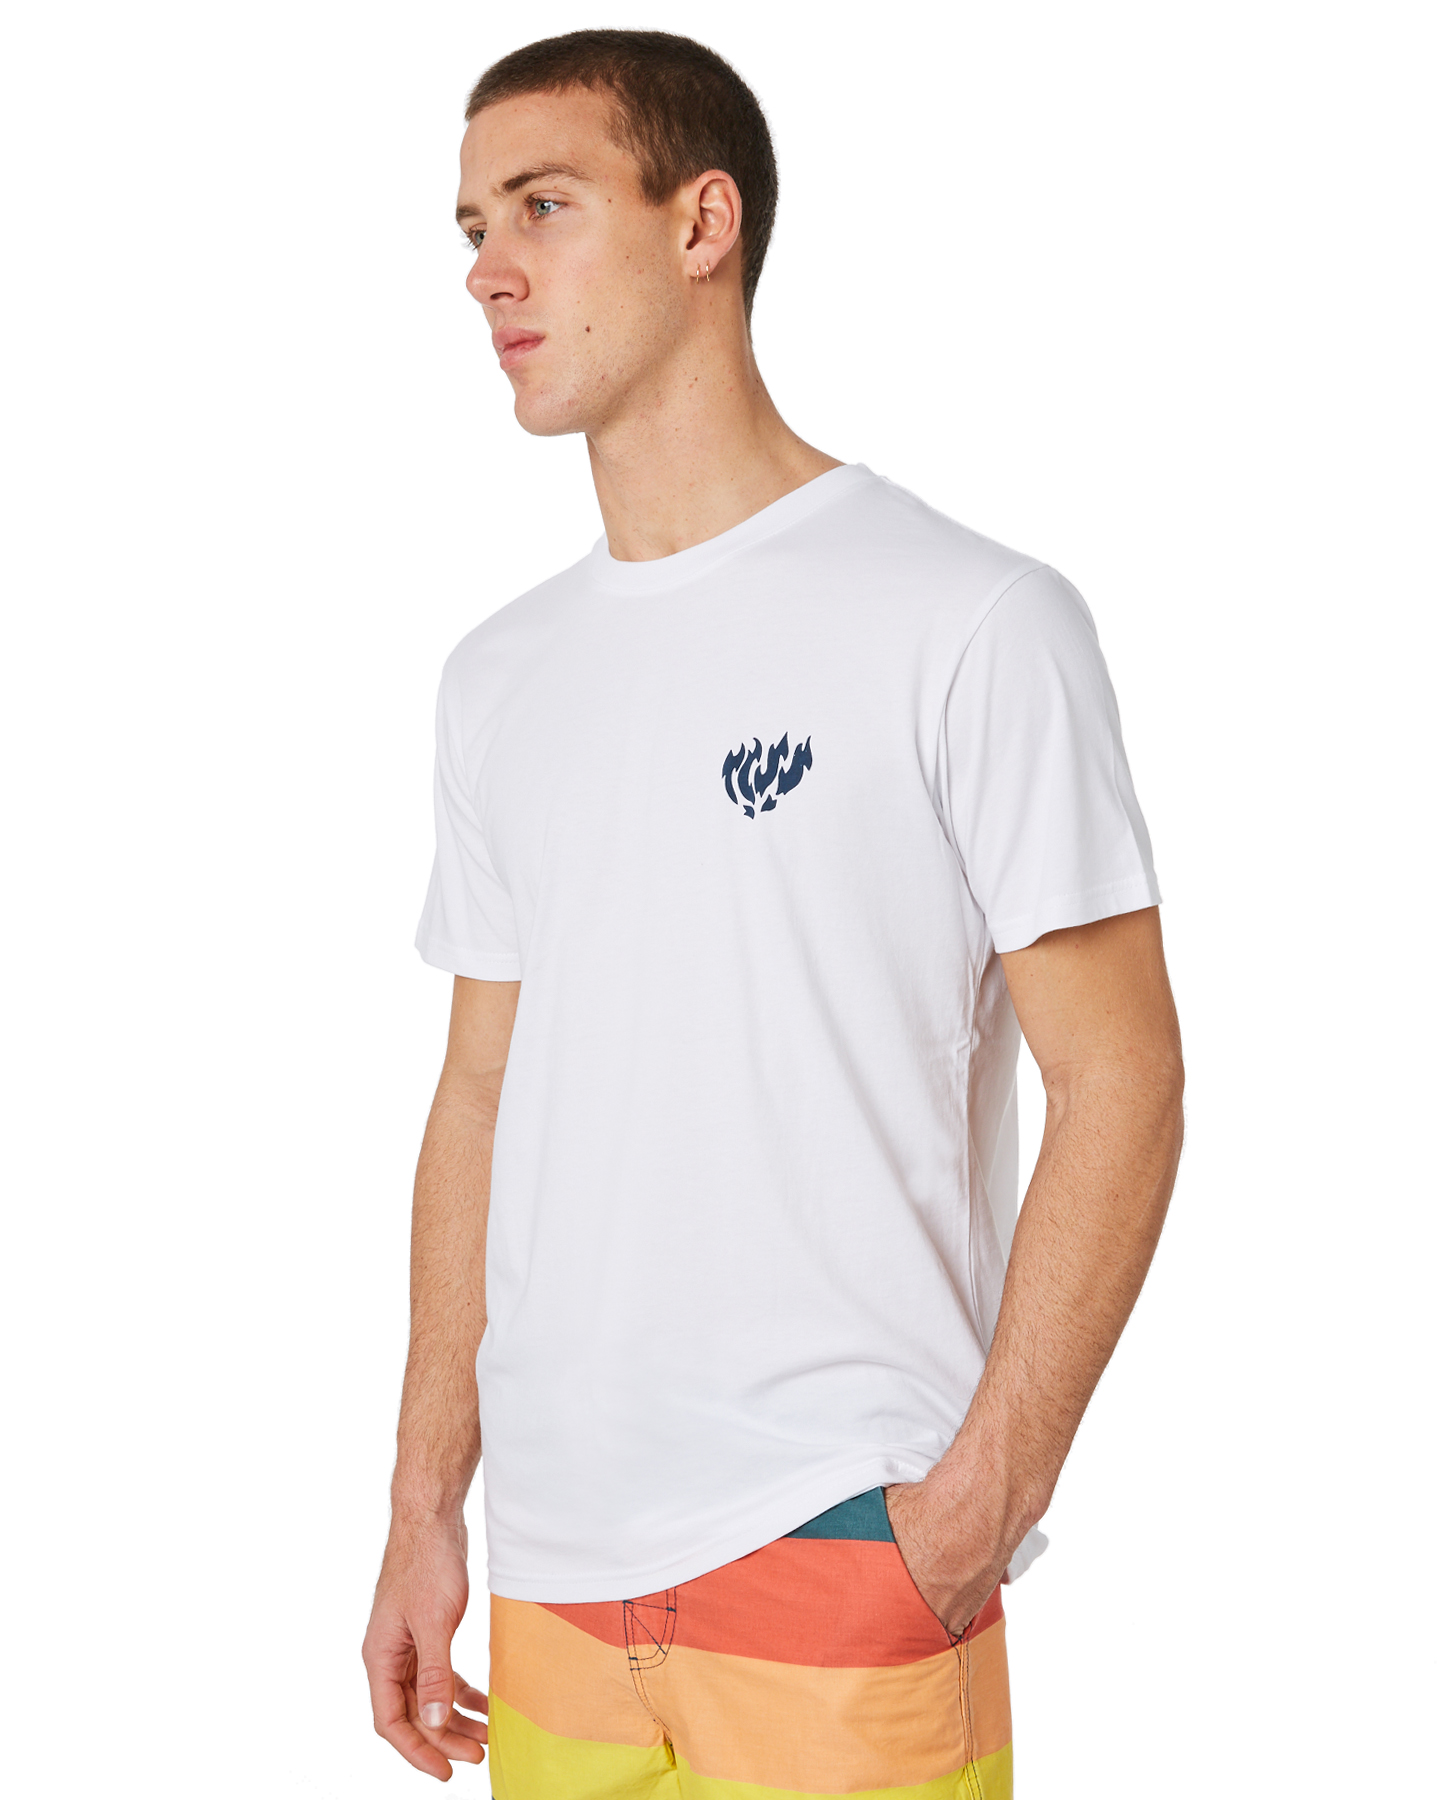 New-The-Critical-Slide-Society-Men-039-s-Burn-Out-Mens-Tee-White